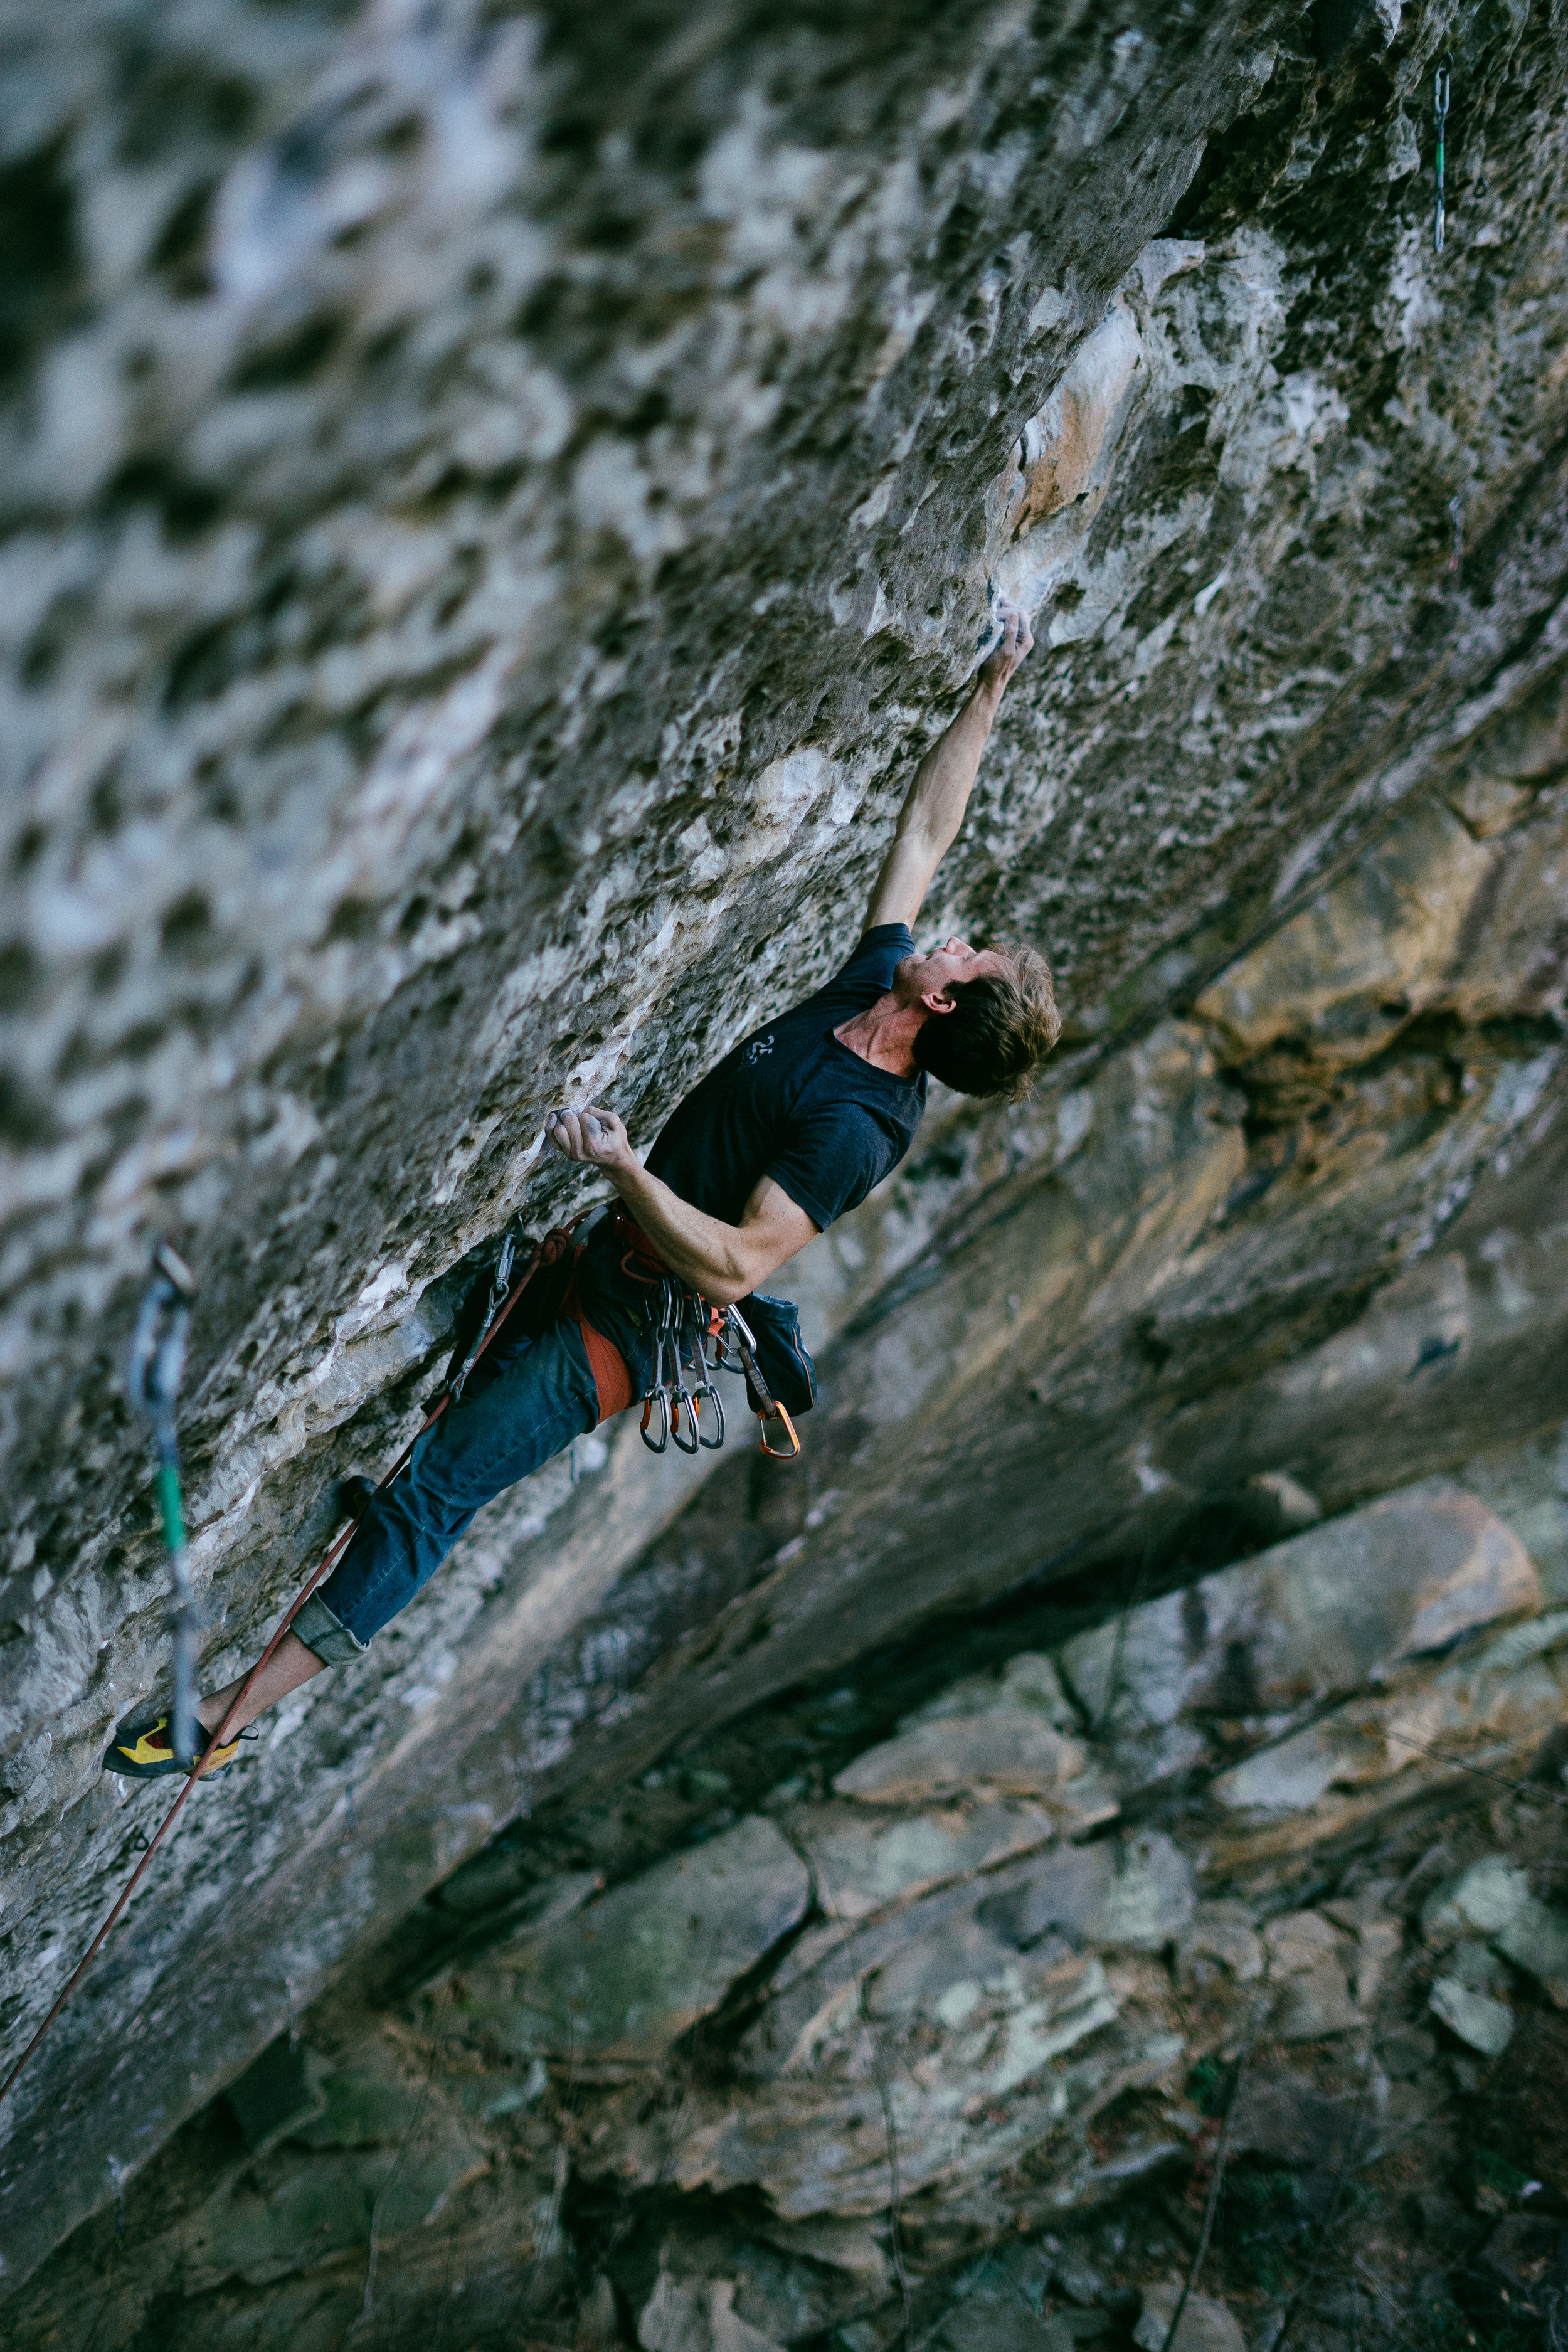 Seth Bently at the Red River Gorge, KY